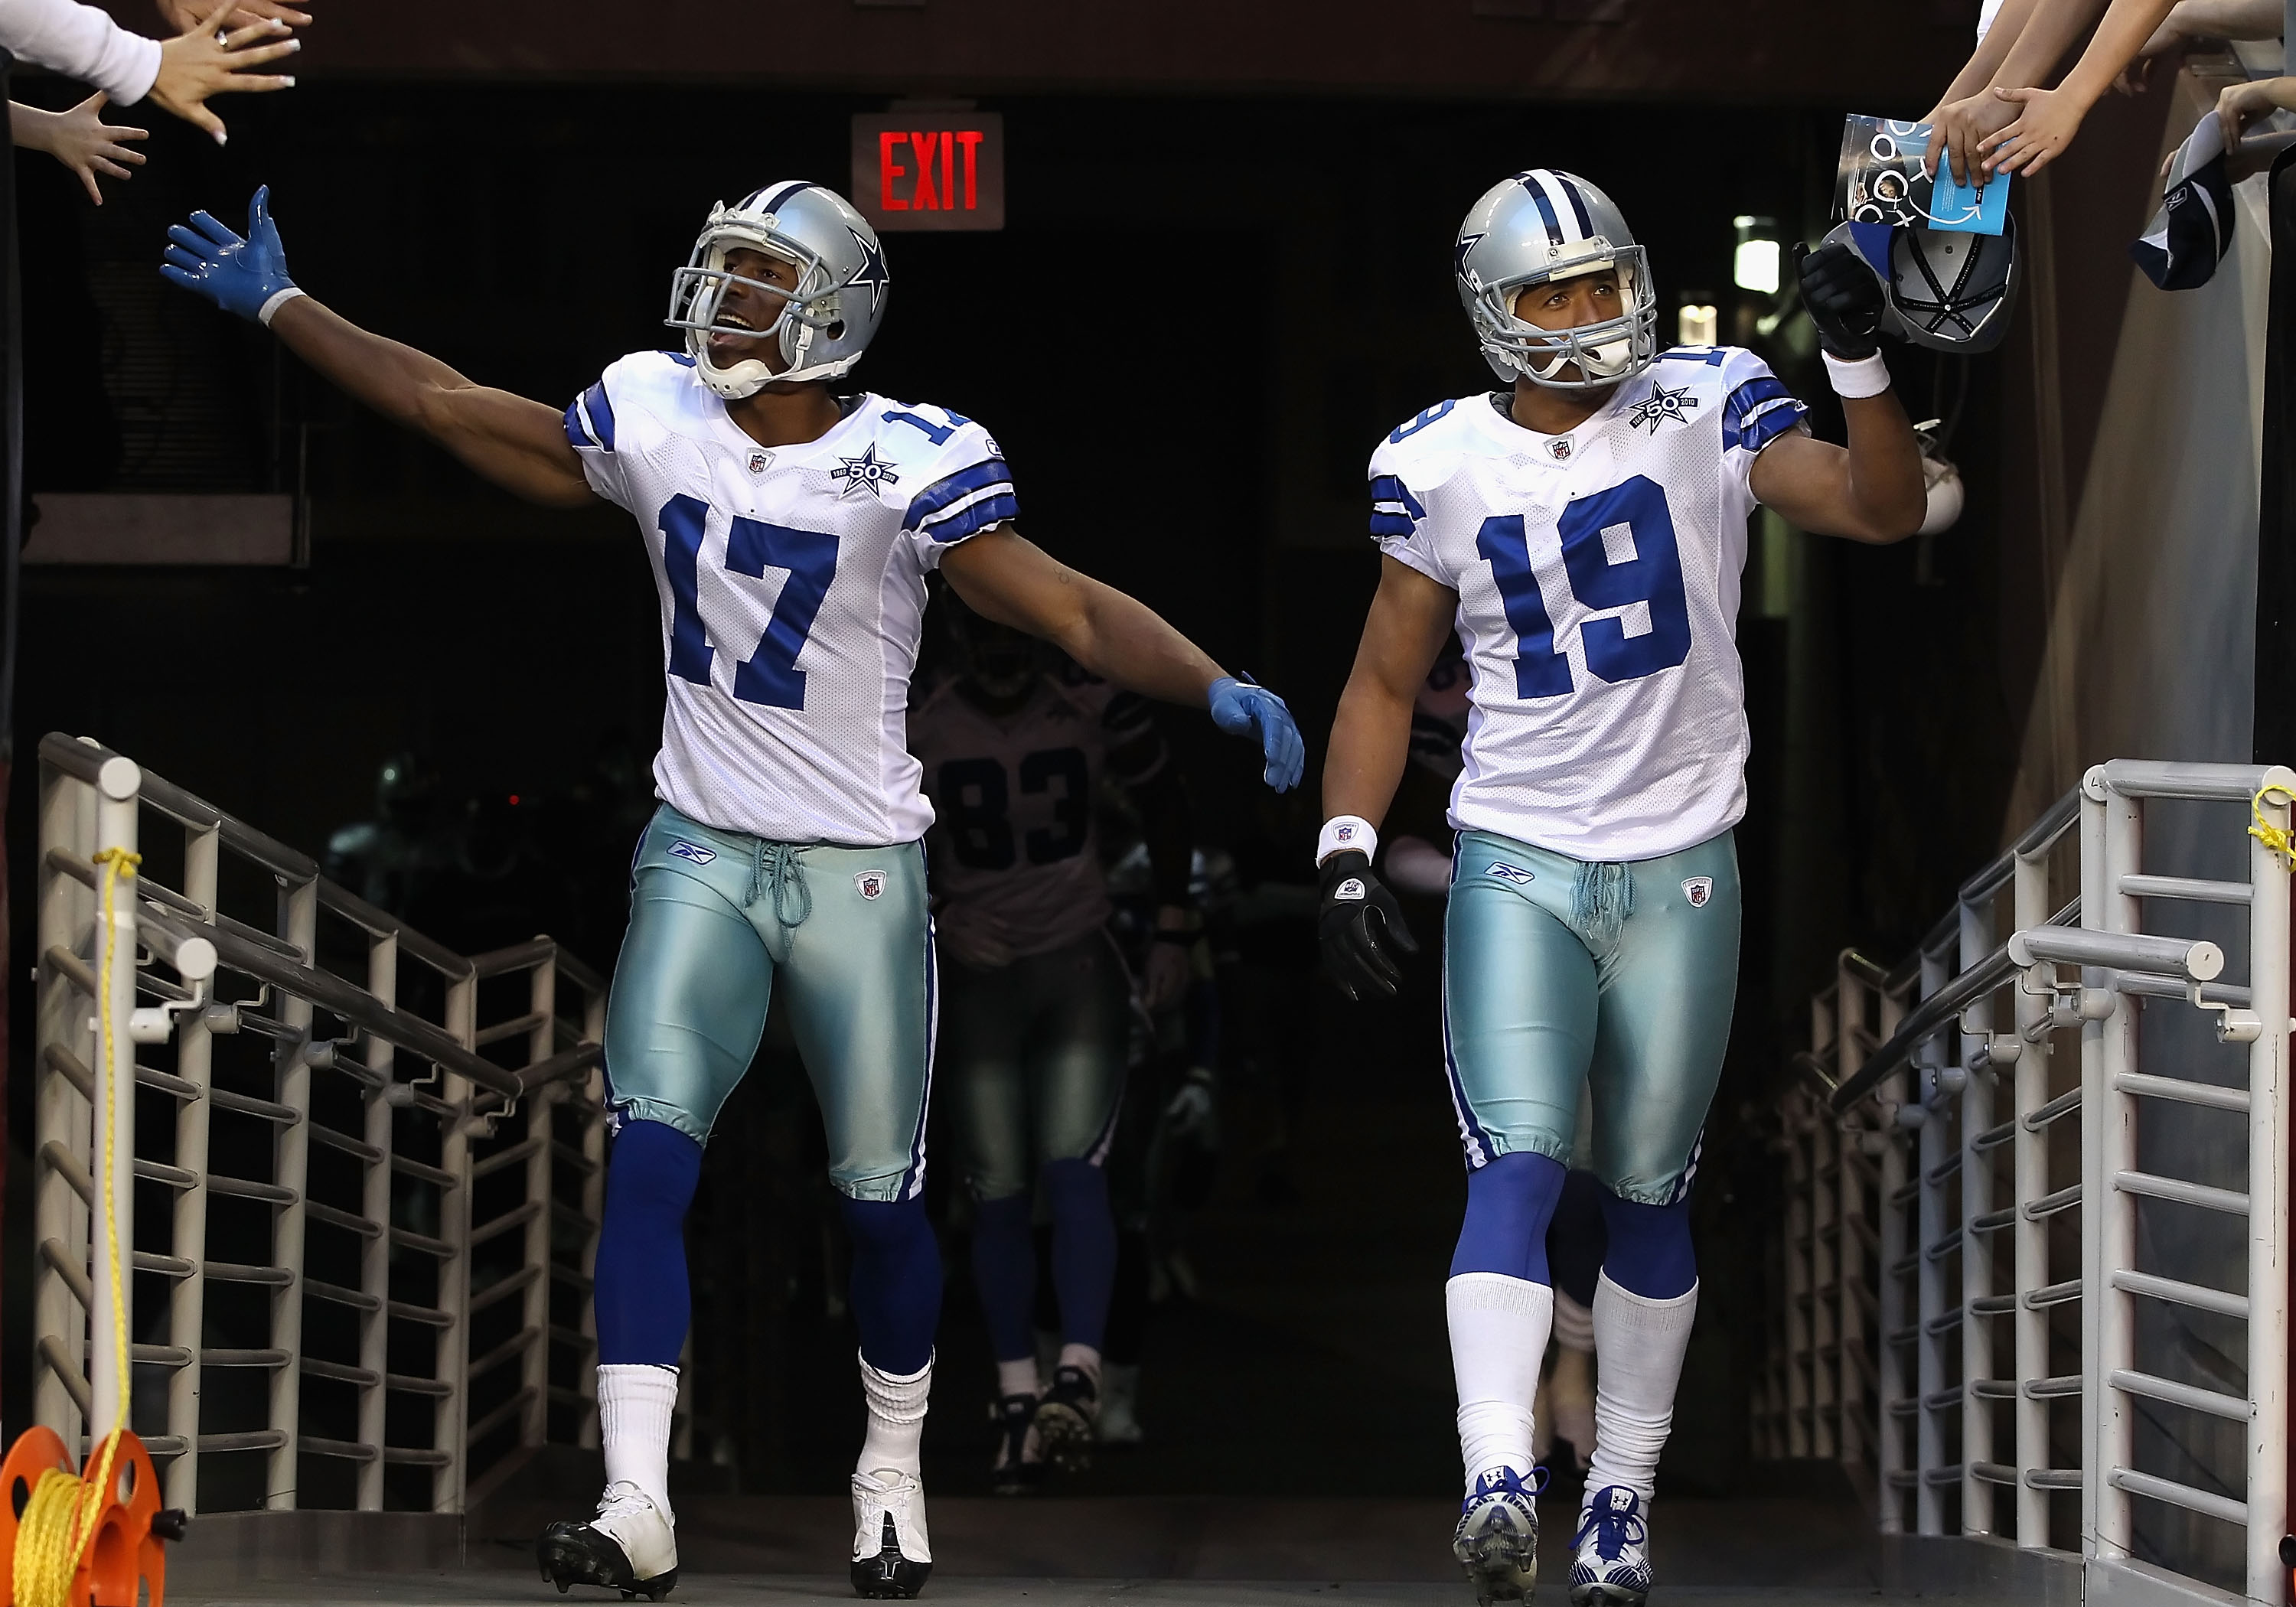 GLENDALE, AZ - DECEMBER 25:  Sam Hurd #17 and Miles Austin #19 of the Dallas Cowboys walk out onto the field before the NFL game against the Arizona Cardinals at the University of Phoenix Stadium on December 25, 2010 in Glendale, Arizona.  The Cardinals d